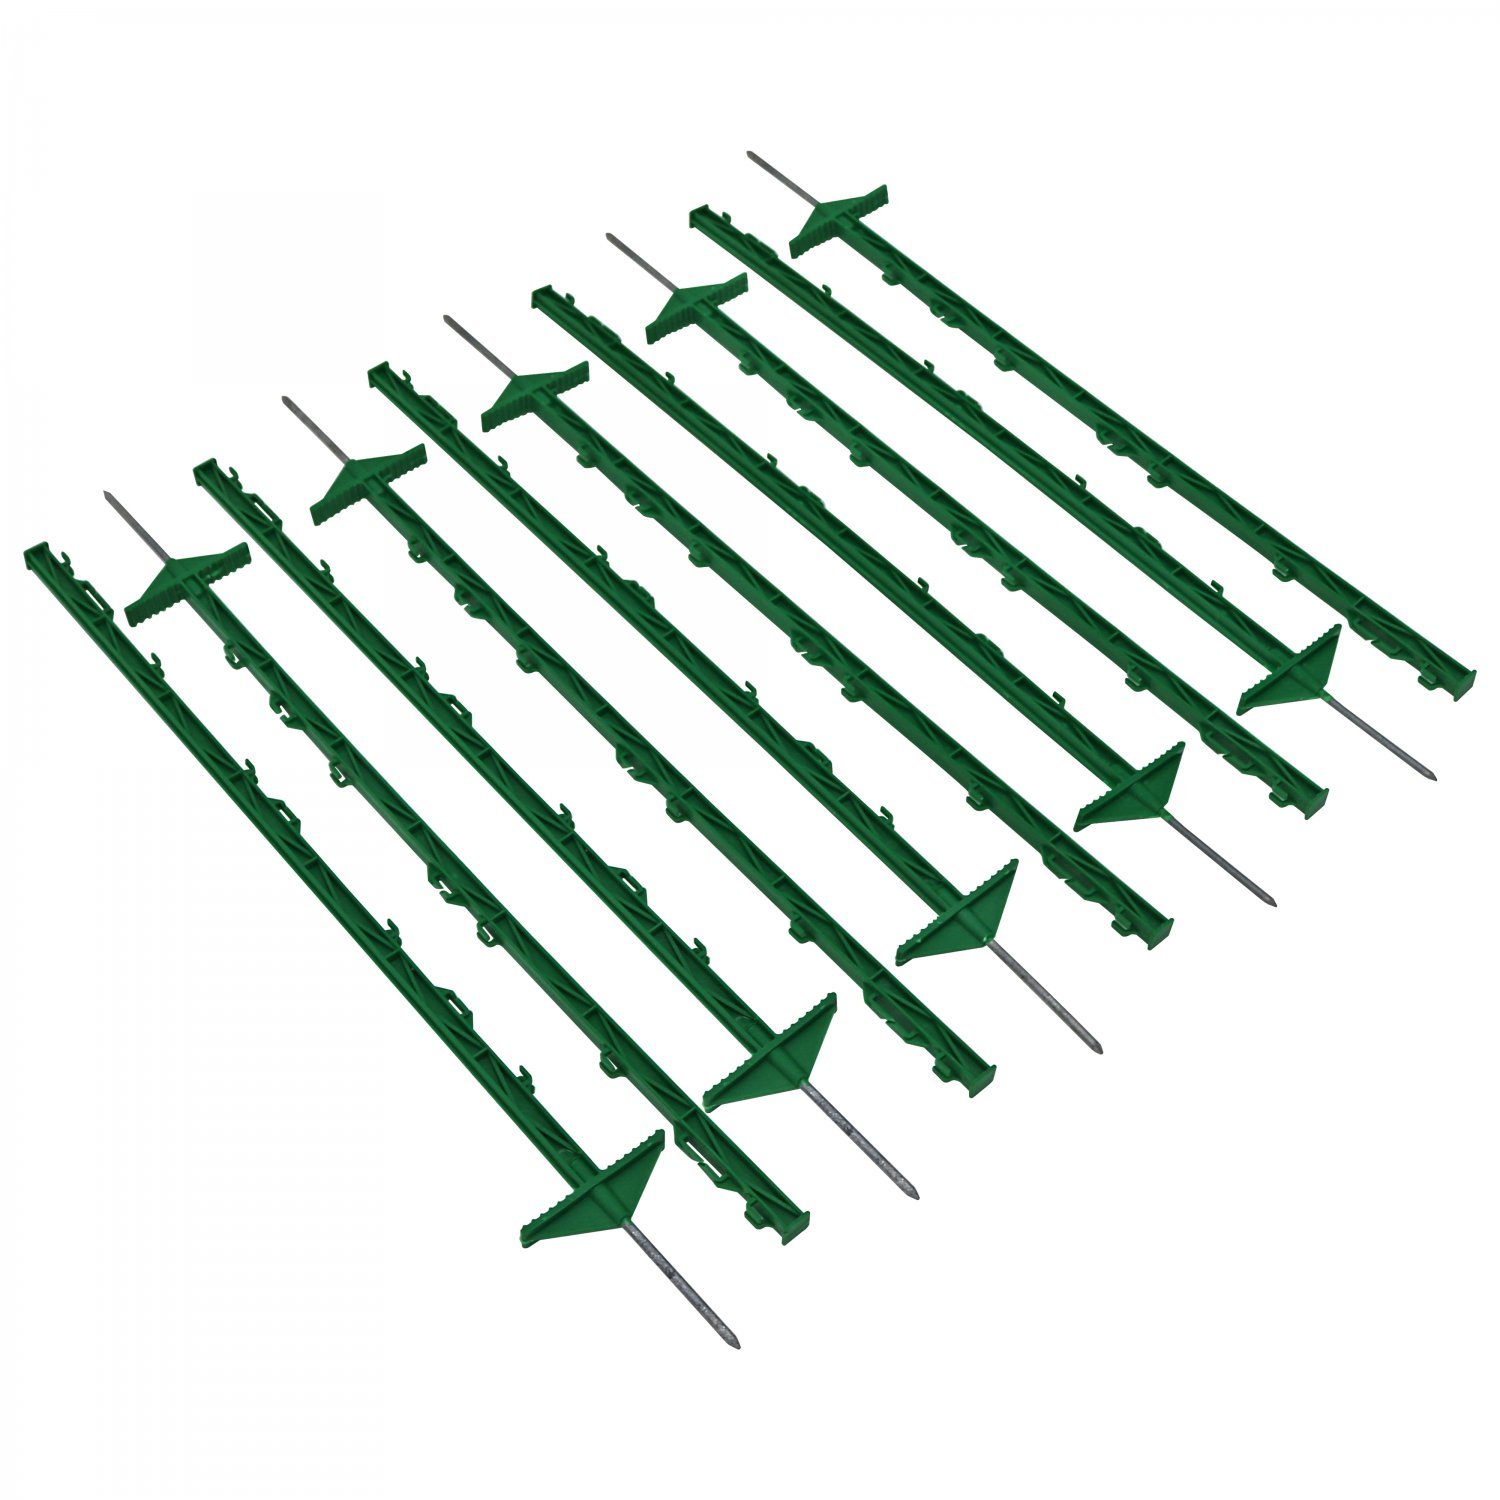 1m Green Plastic Electric Fencing Pins Posts Stakes Pack of 10